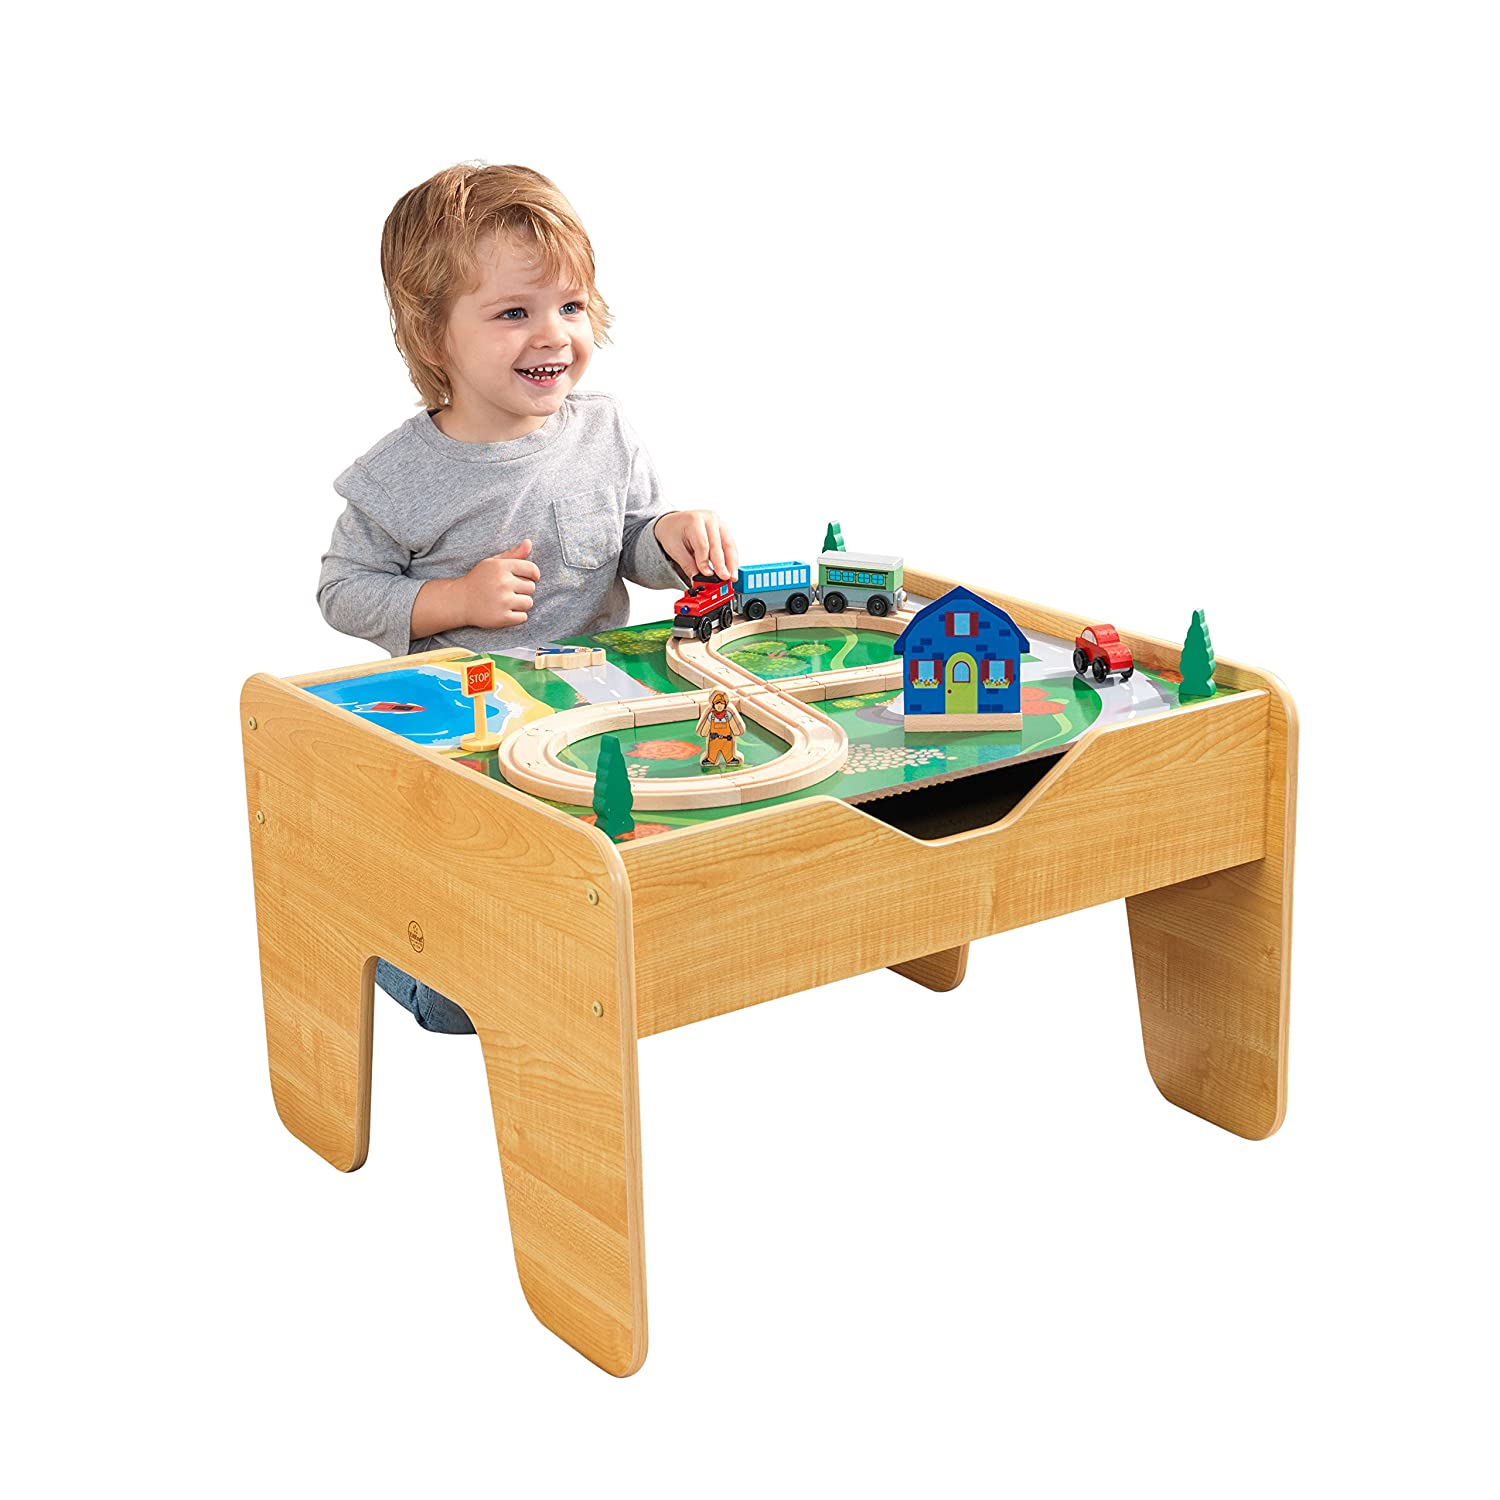 Superieur Amazon.com: KidKraft 2 In 1 Activity Table With Board   Natural: Toys U0026  Games